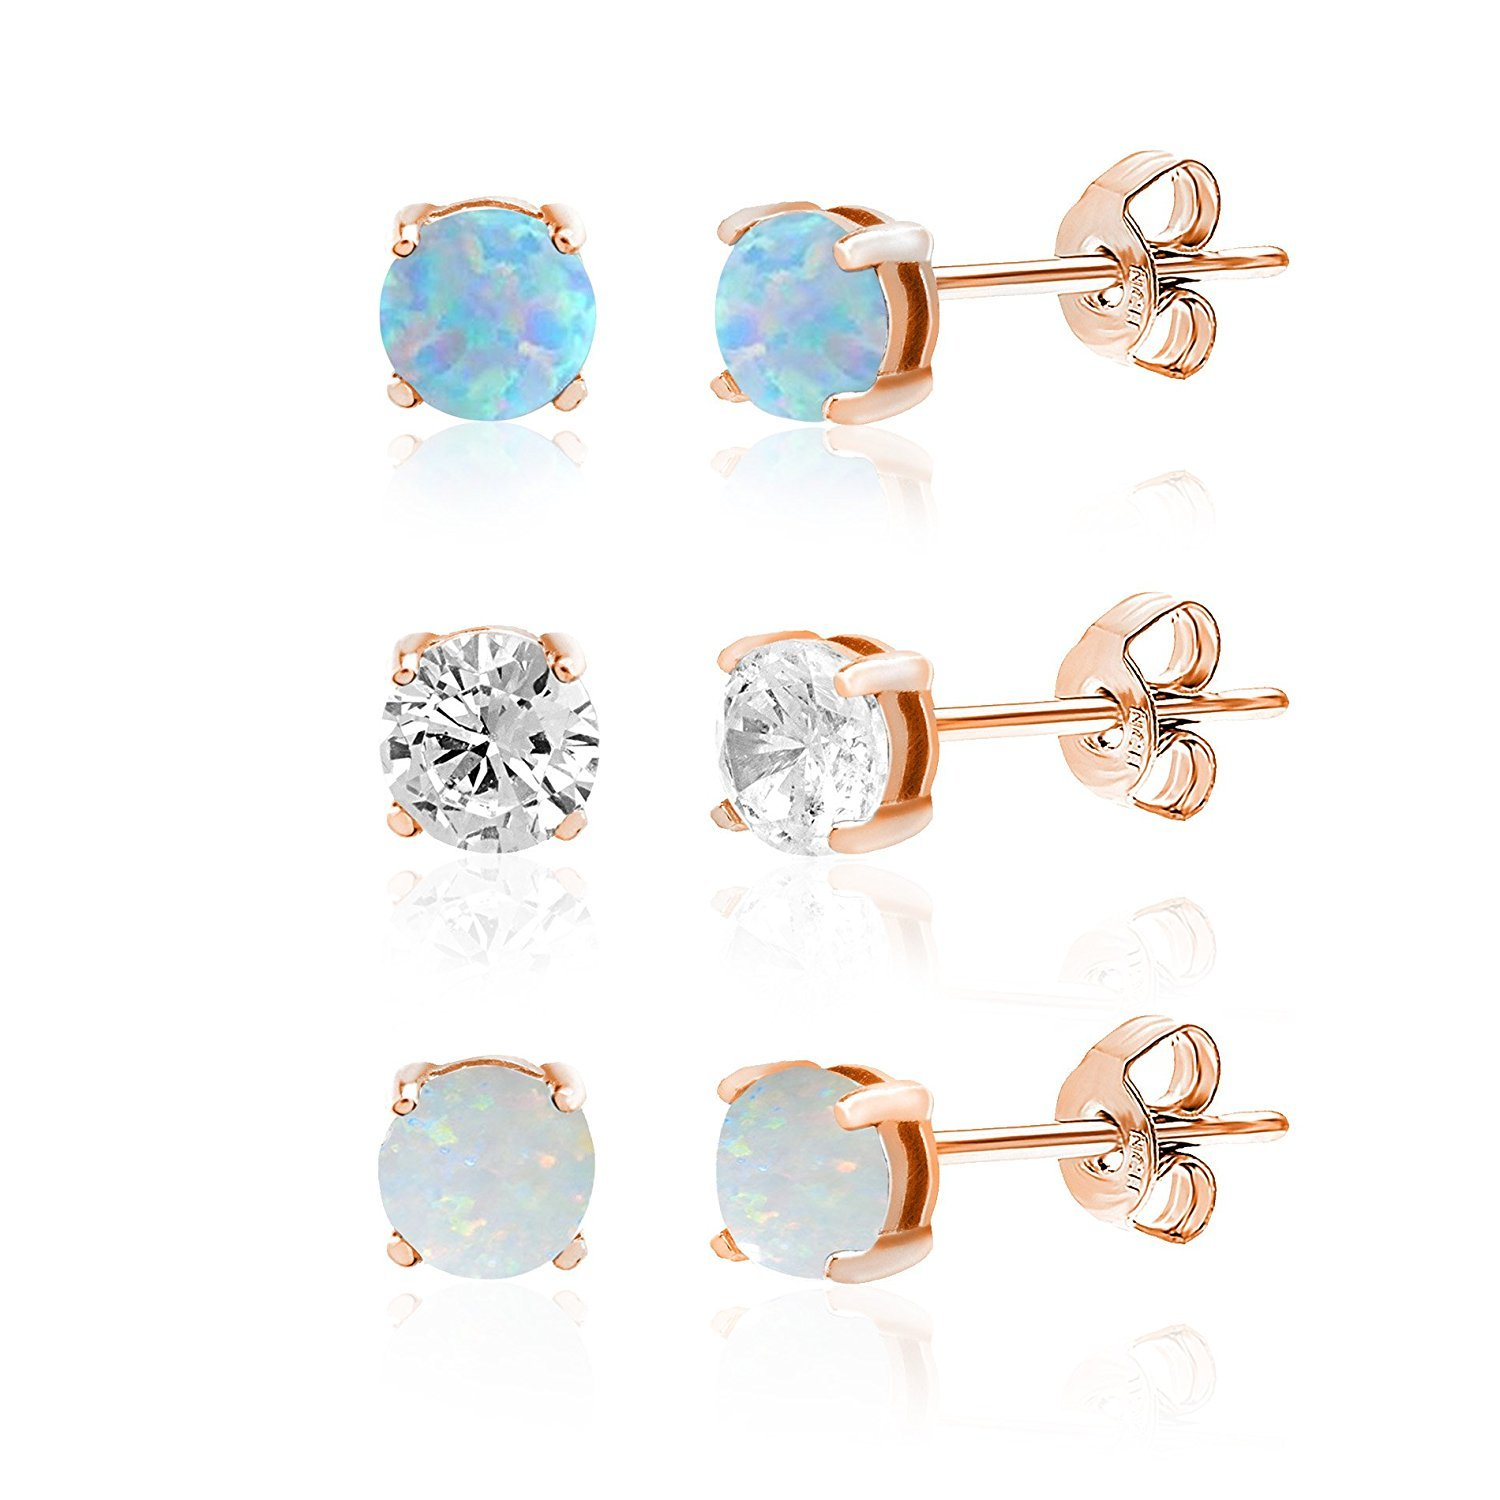 Lesa Michele Lab Created Opal and Cubic Zirconia 3 pair Stud Earring Set in Rose Gold over Sterling Silver